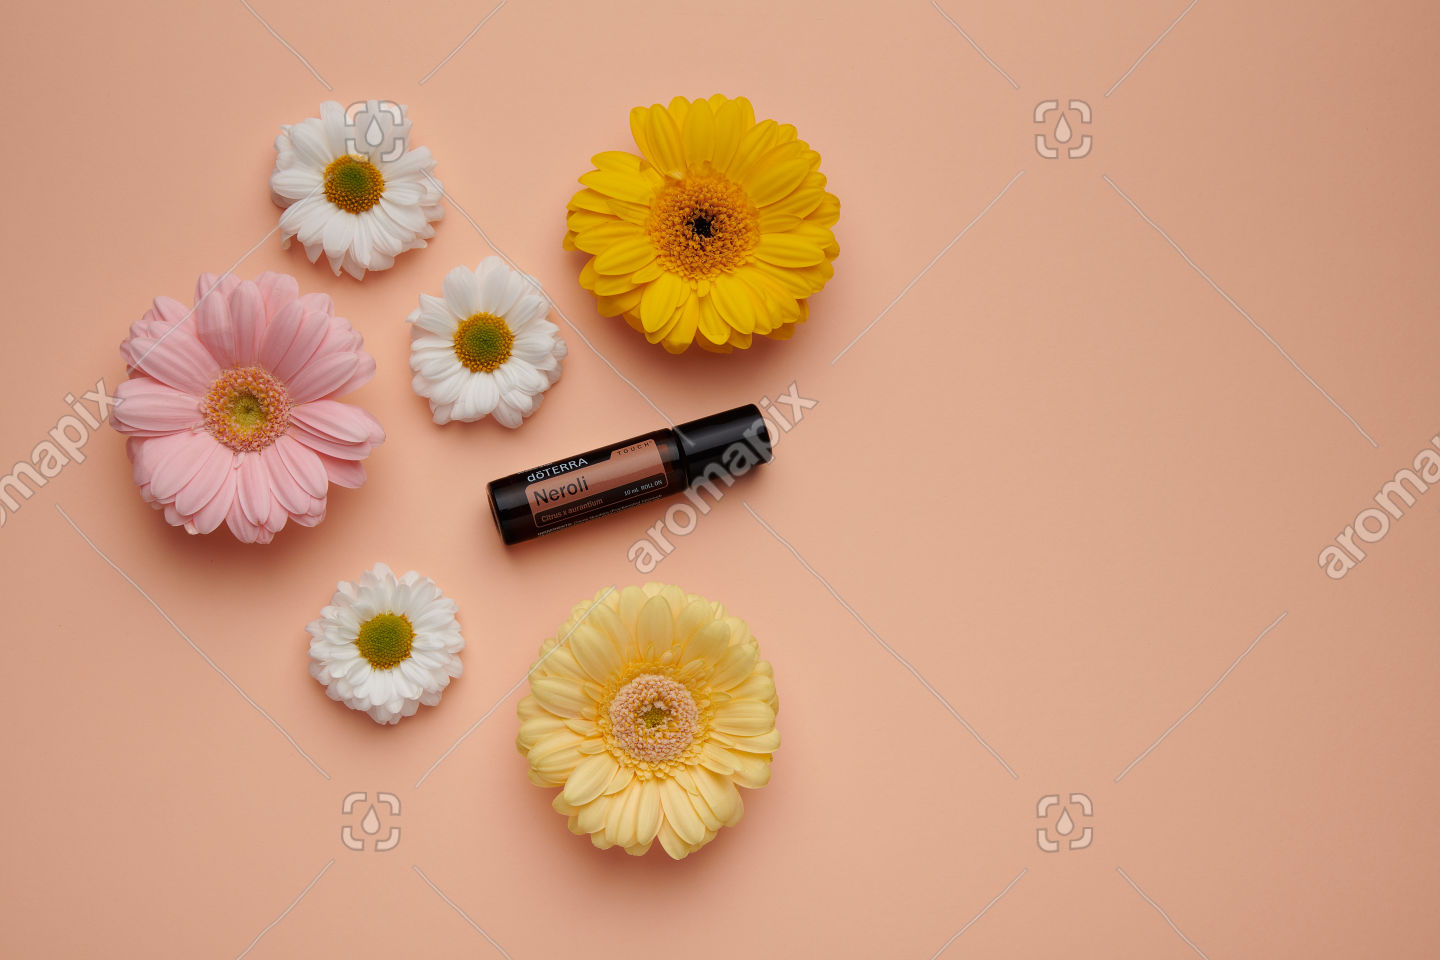 doTERRA Neroli Touch with flowers on pale orange